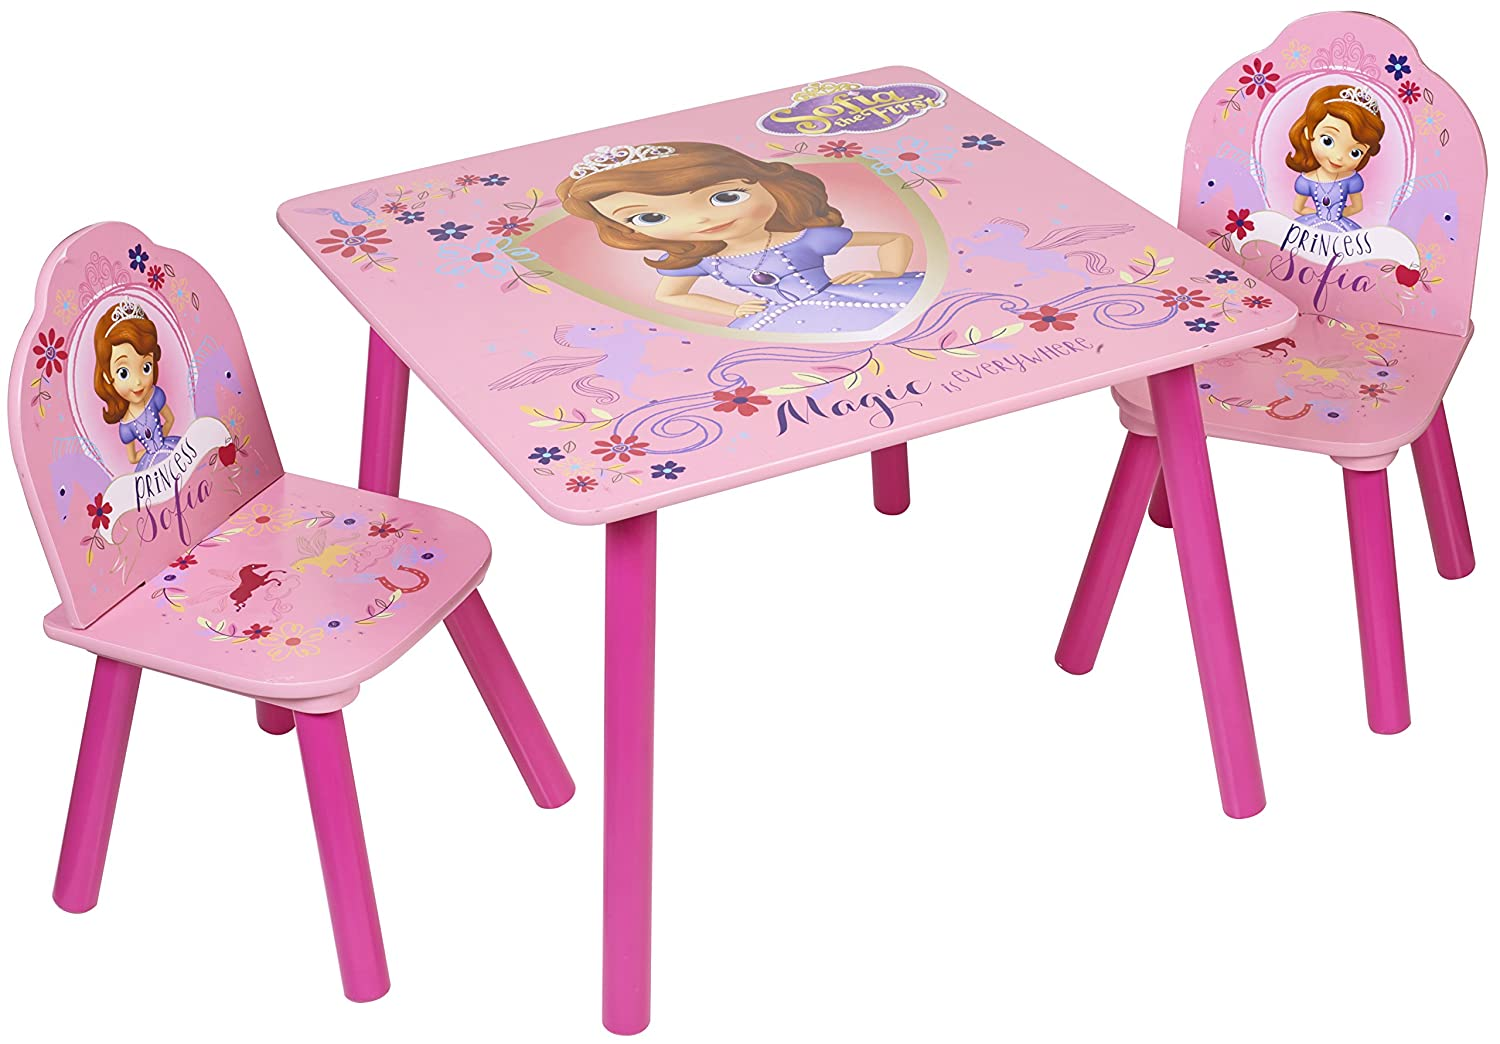 Disney Sofia The First Table and Chairs Wood Pink Amazon.co.uk Kitchen u0026 Home  sc 1 st  Amazon UK & Disney Sofia The First Table and Chairs Wood Pink: Amazon.co.uk ...